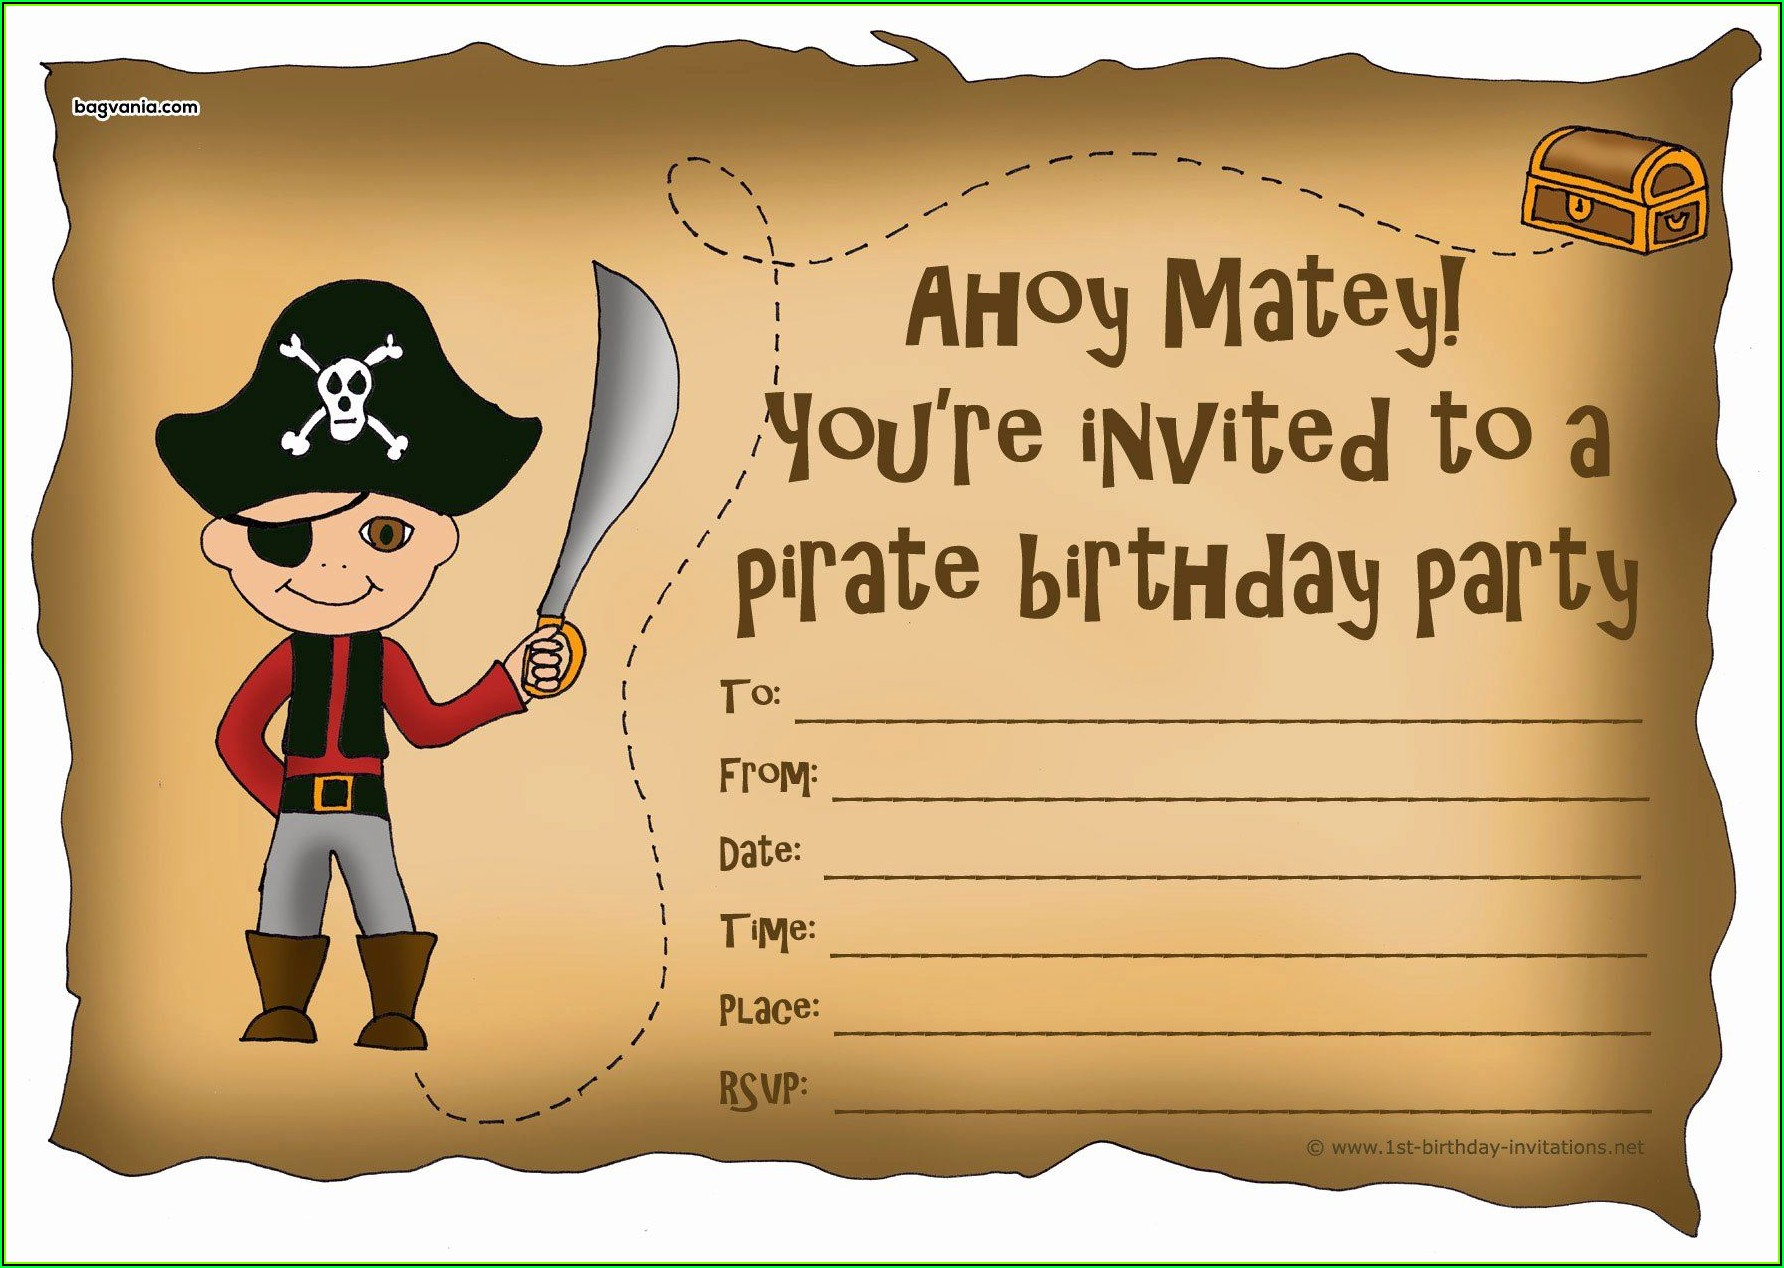 Pirate Birthday Party Invitation Template Free